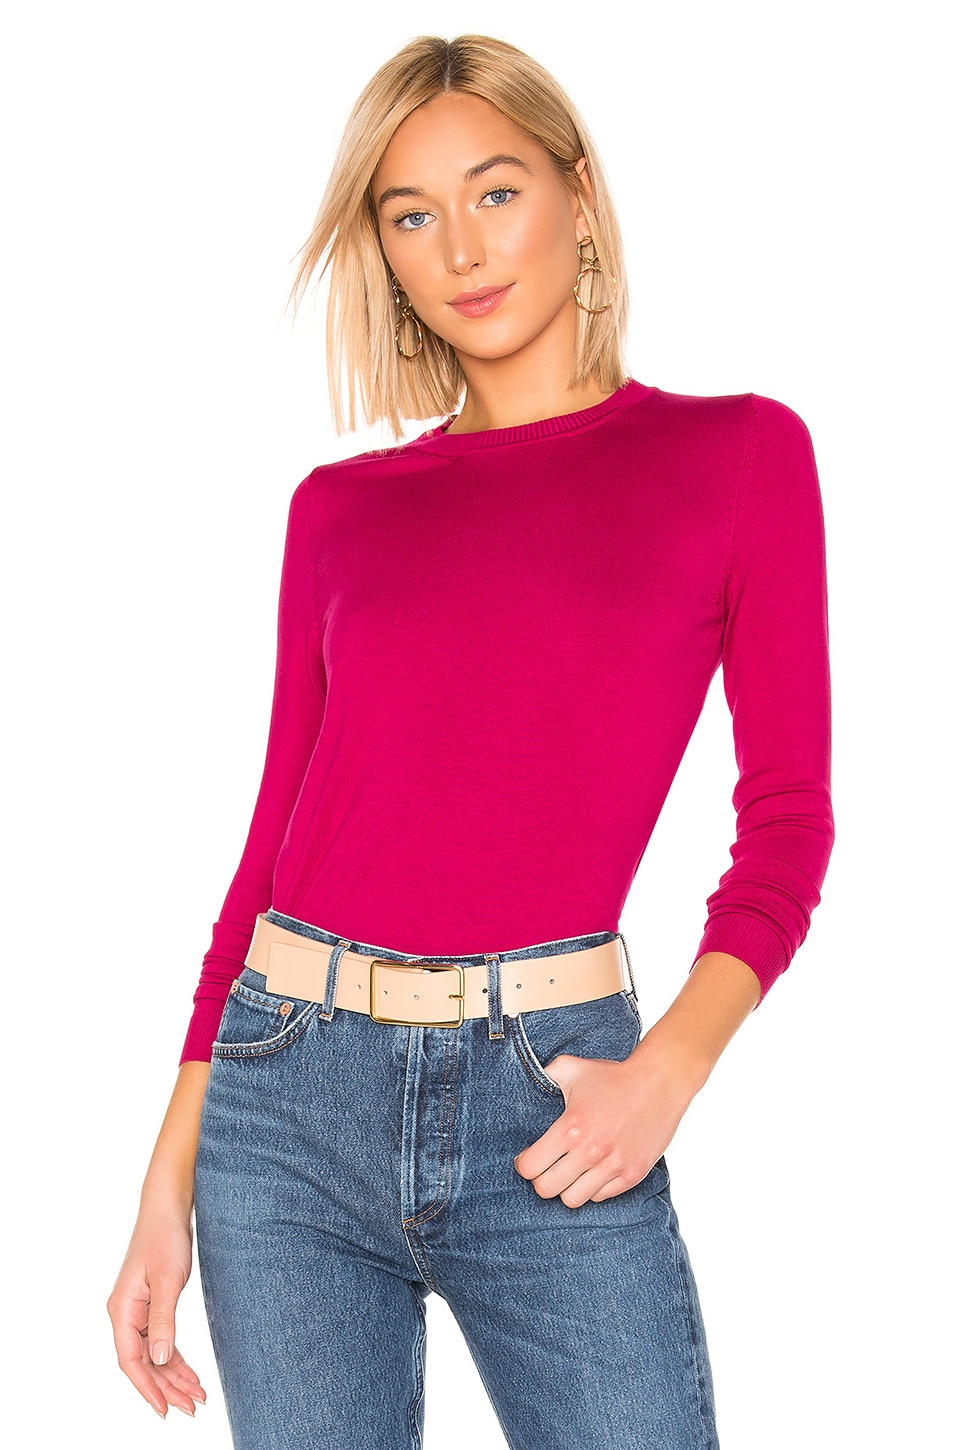 525 america Crew Neck Sweater in Magenta